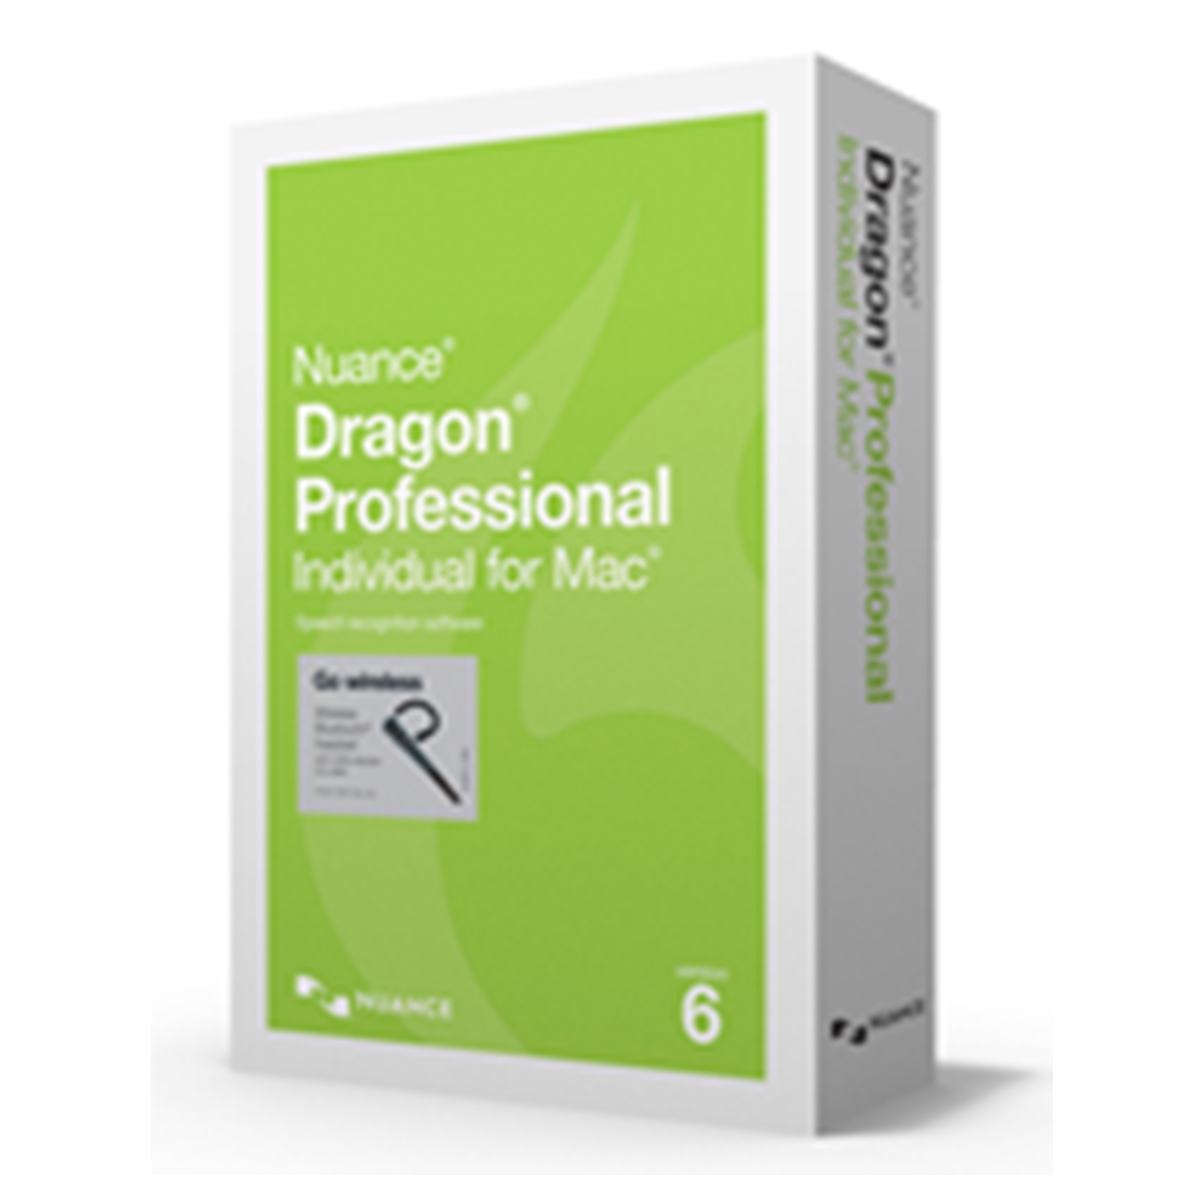 Nuance Dragon Professional Individual 6.0 for Mac English - Wireless